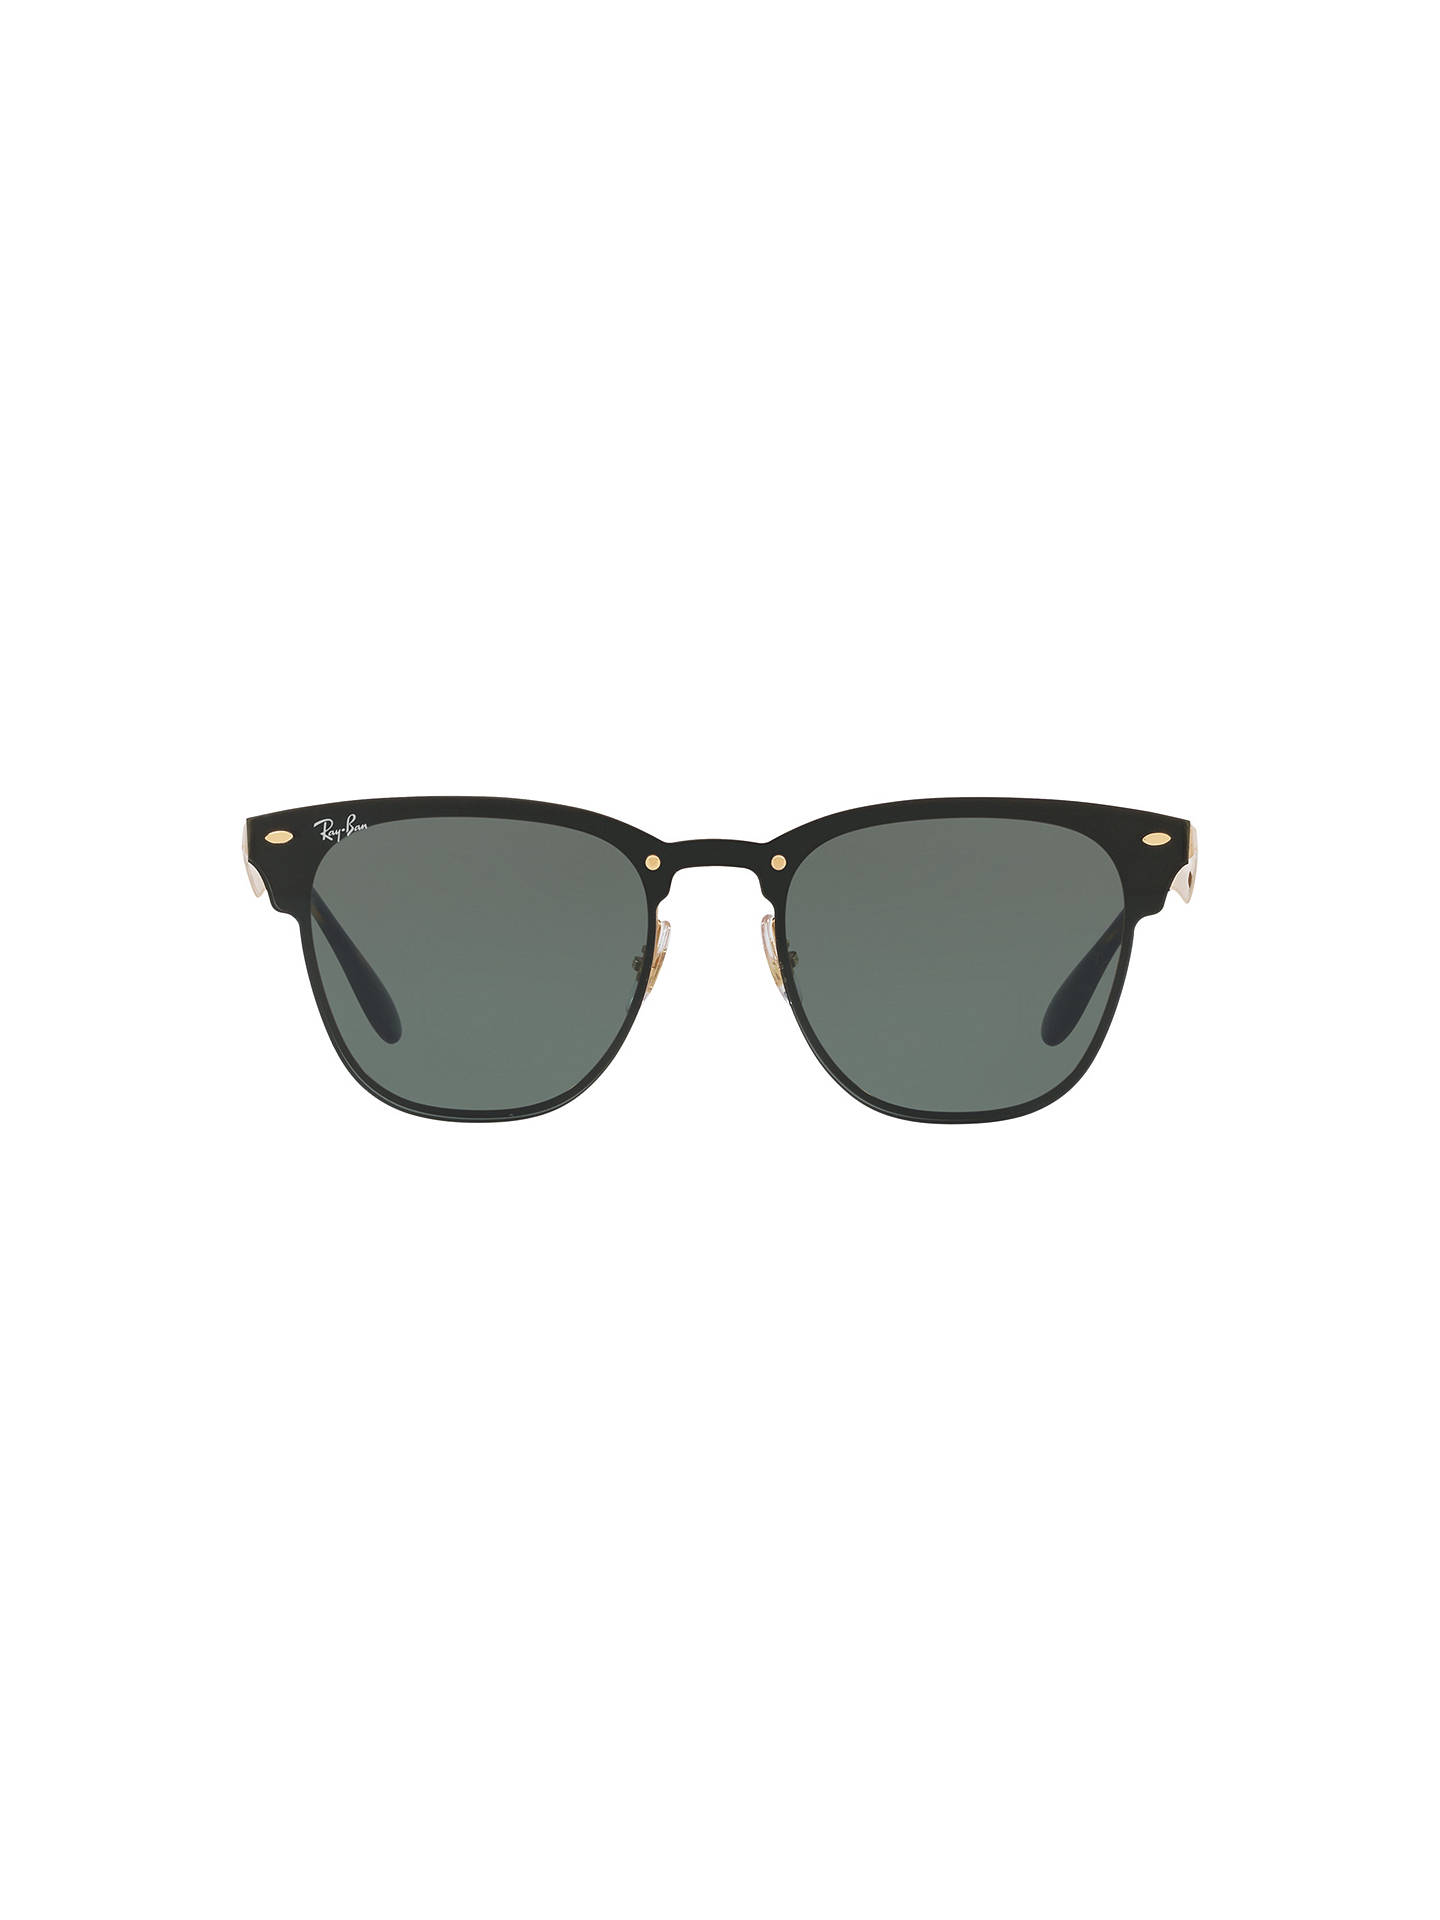 780a66bb790b1 Ray-Ban RB3576N Blaze Clubmaster Square Sunglasses at John Lewis ...